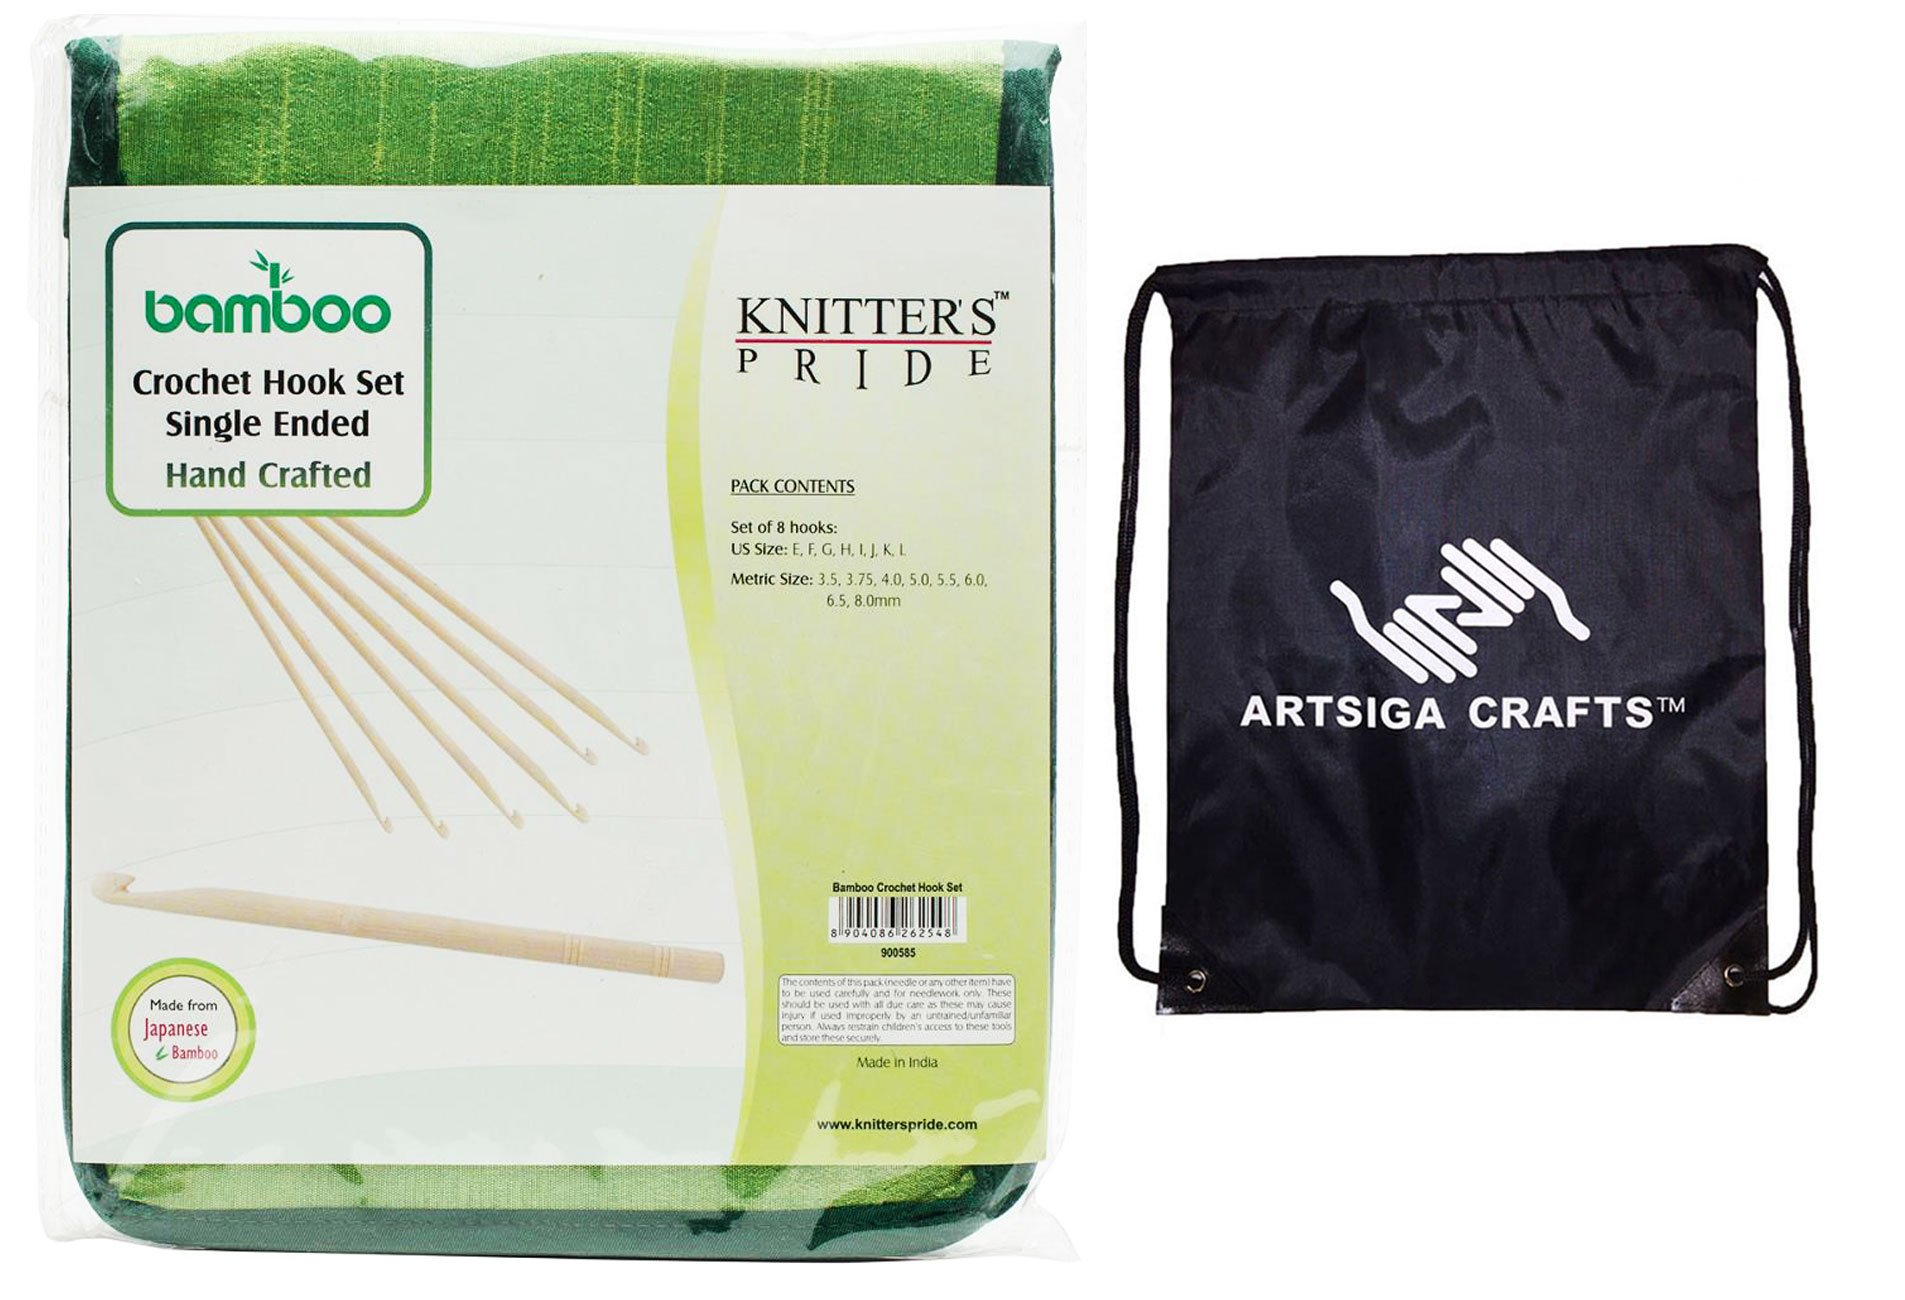 Knitter's Pride Bamboo Single Ended Crochet Hook Set Bundle with 1 Artsiga Crafts Project Bag 900585